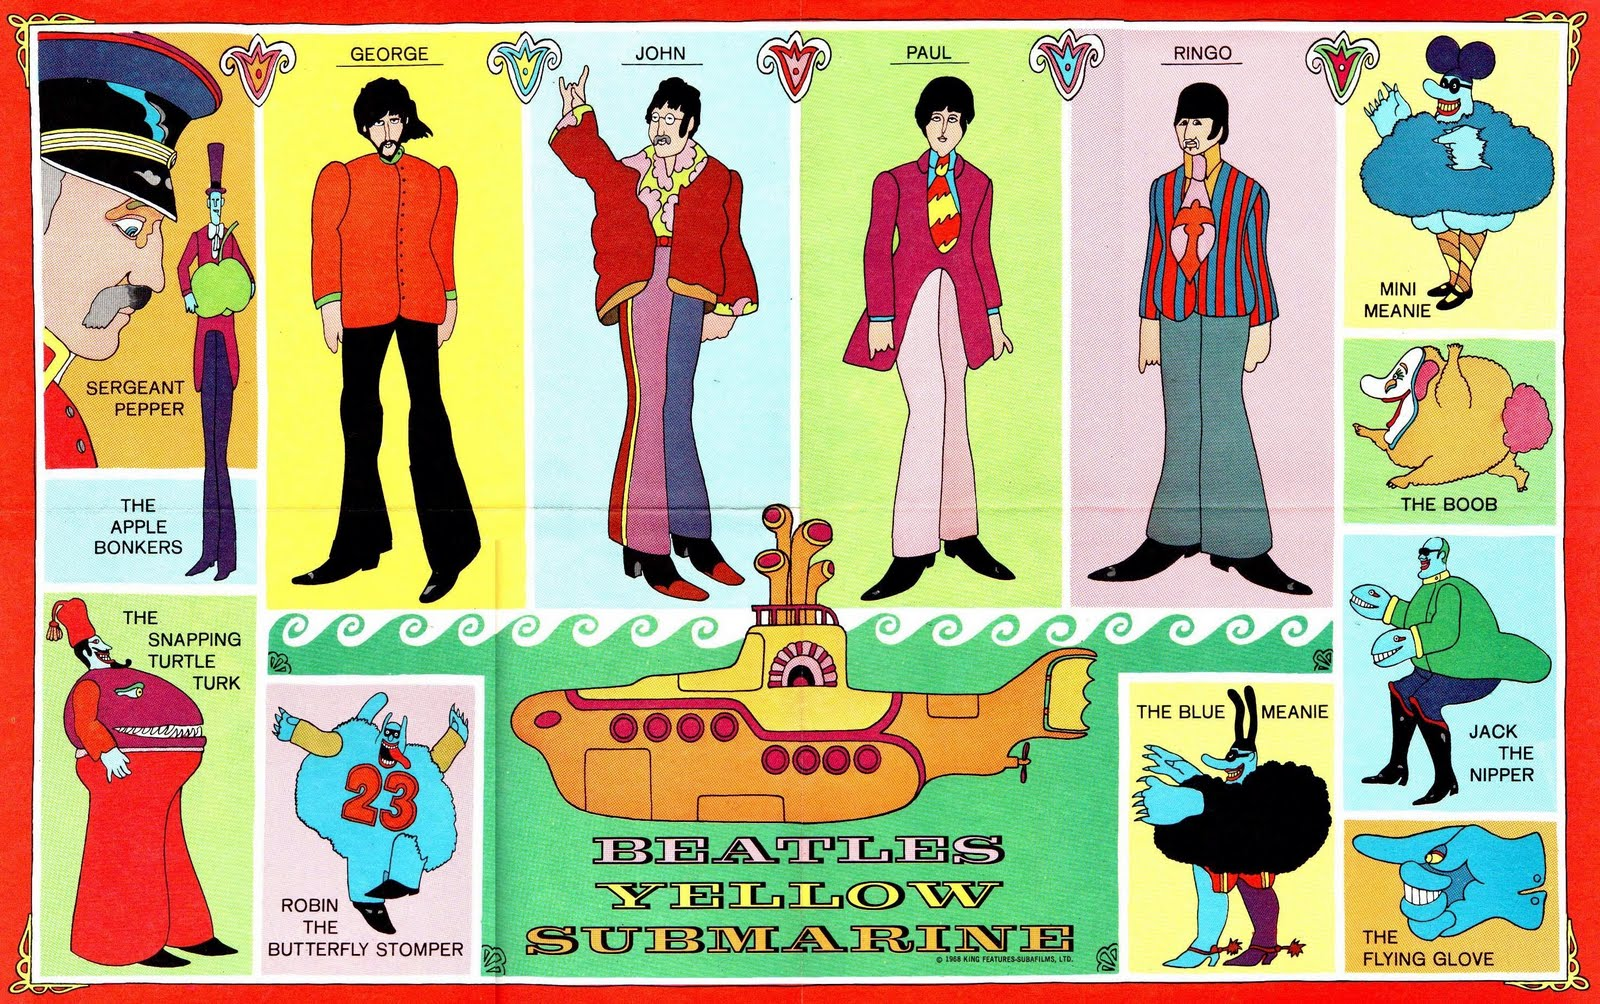 beatles_yellow_submarine_comic_poster